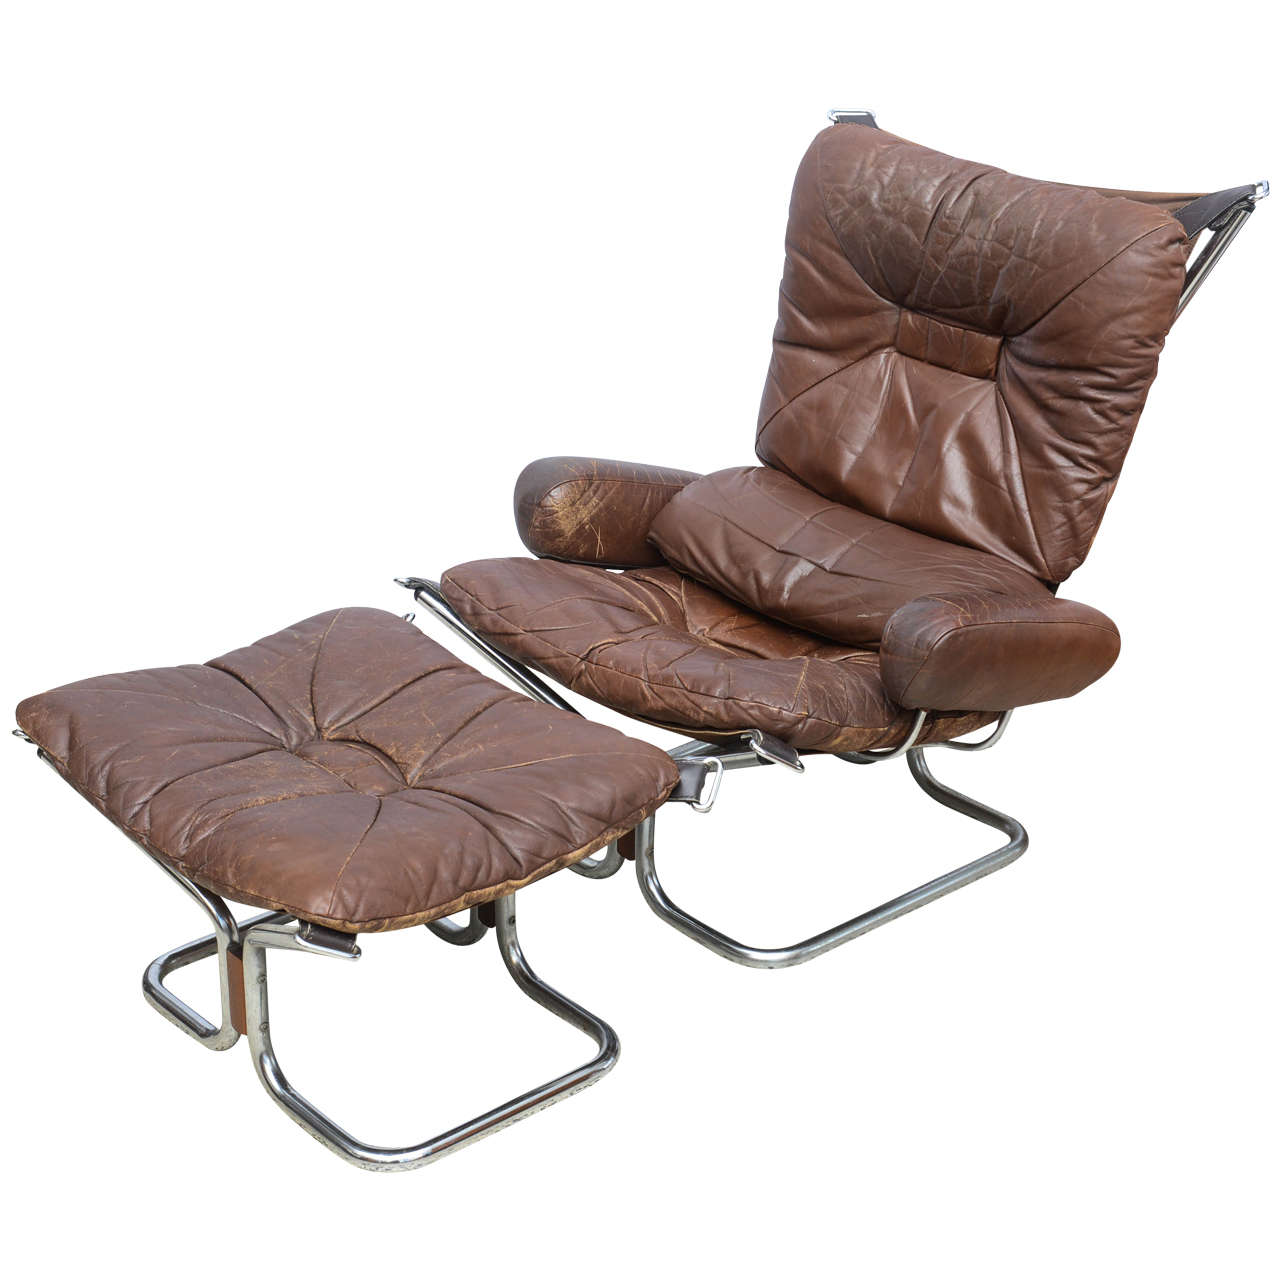 Leather Chair And Ottoman Ingmar Relling For Westnofa Chrome And Leather Chair And Ottoman Norway 1970s